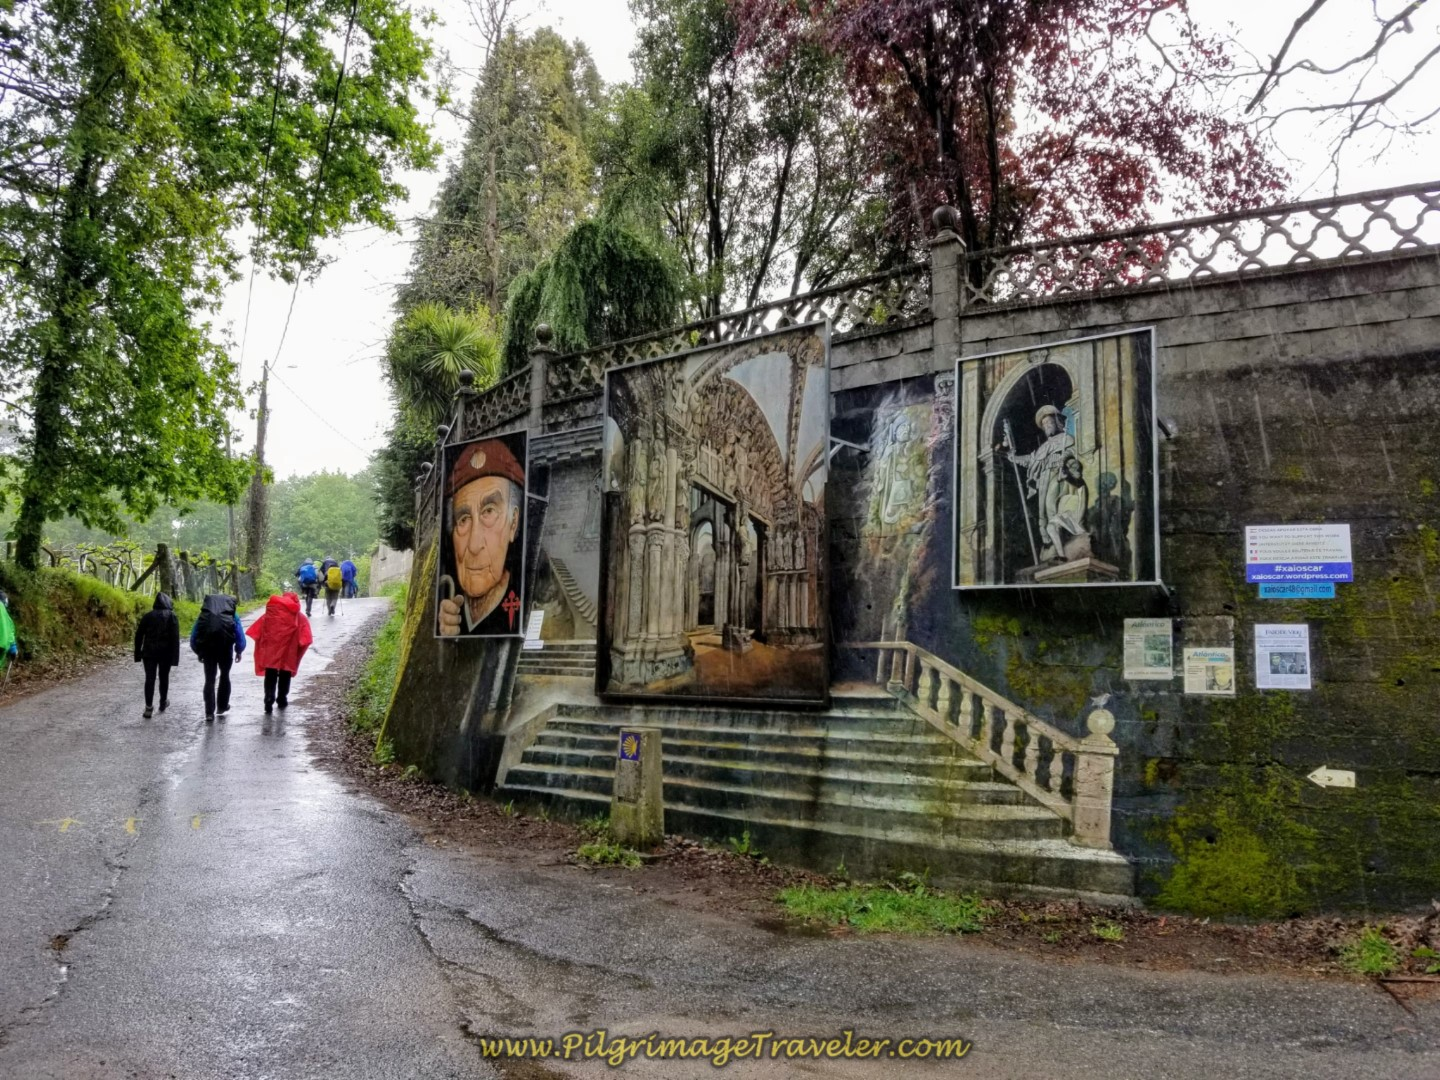 The Portico da Gloria Mural in Orbenlle on day twenty on the central route of the Portuguese Camino